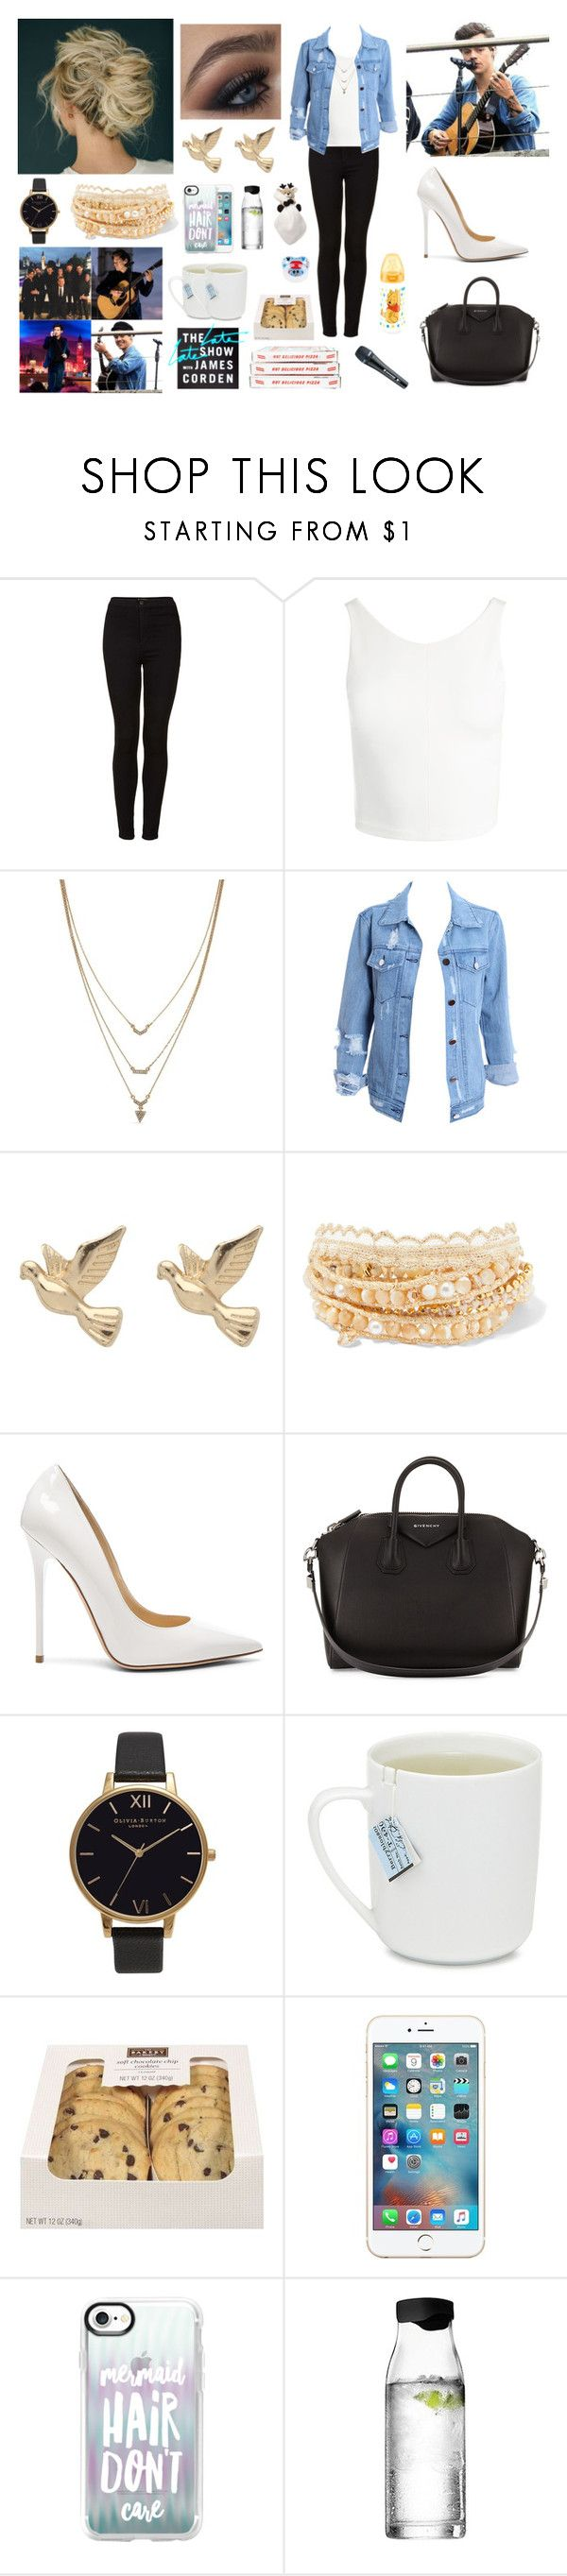 """Repetition for Late Late show in London with Harry"" by louisericoul ❤ liked on Polyvore featuring Topshop, Sans Souci, Jessica Simpson, M&Co, Chan Luu, Jimmy Choo, Givenchy, Olivia Burton, Casetify and Menu"